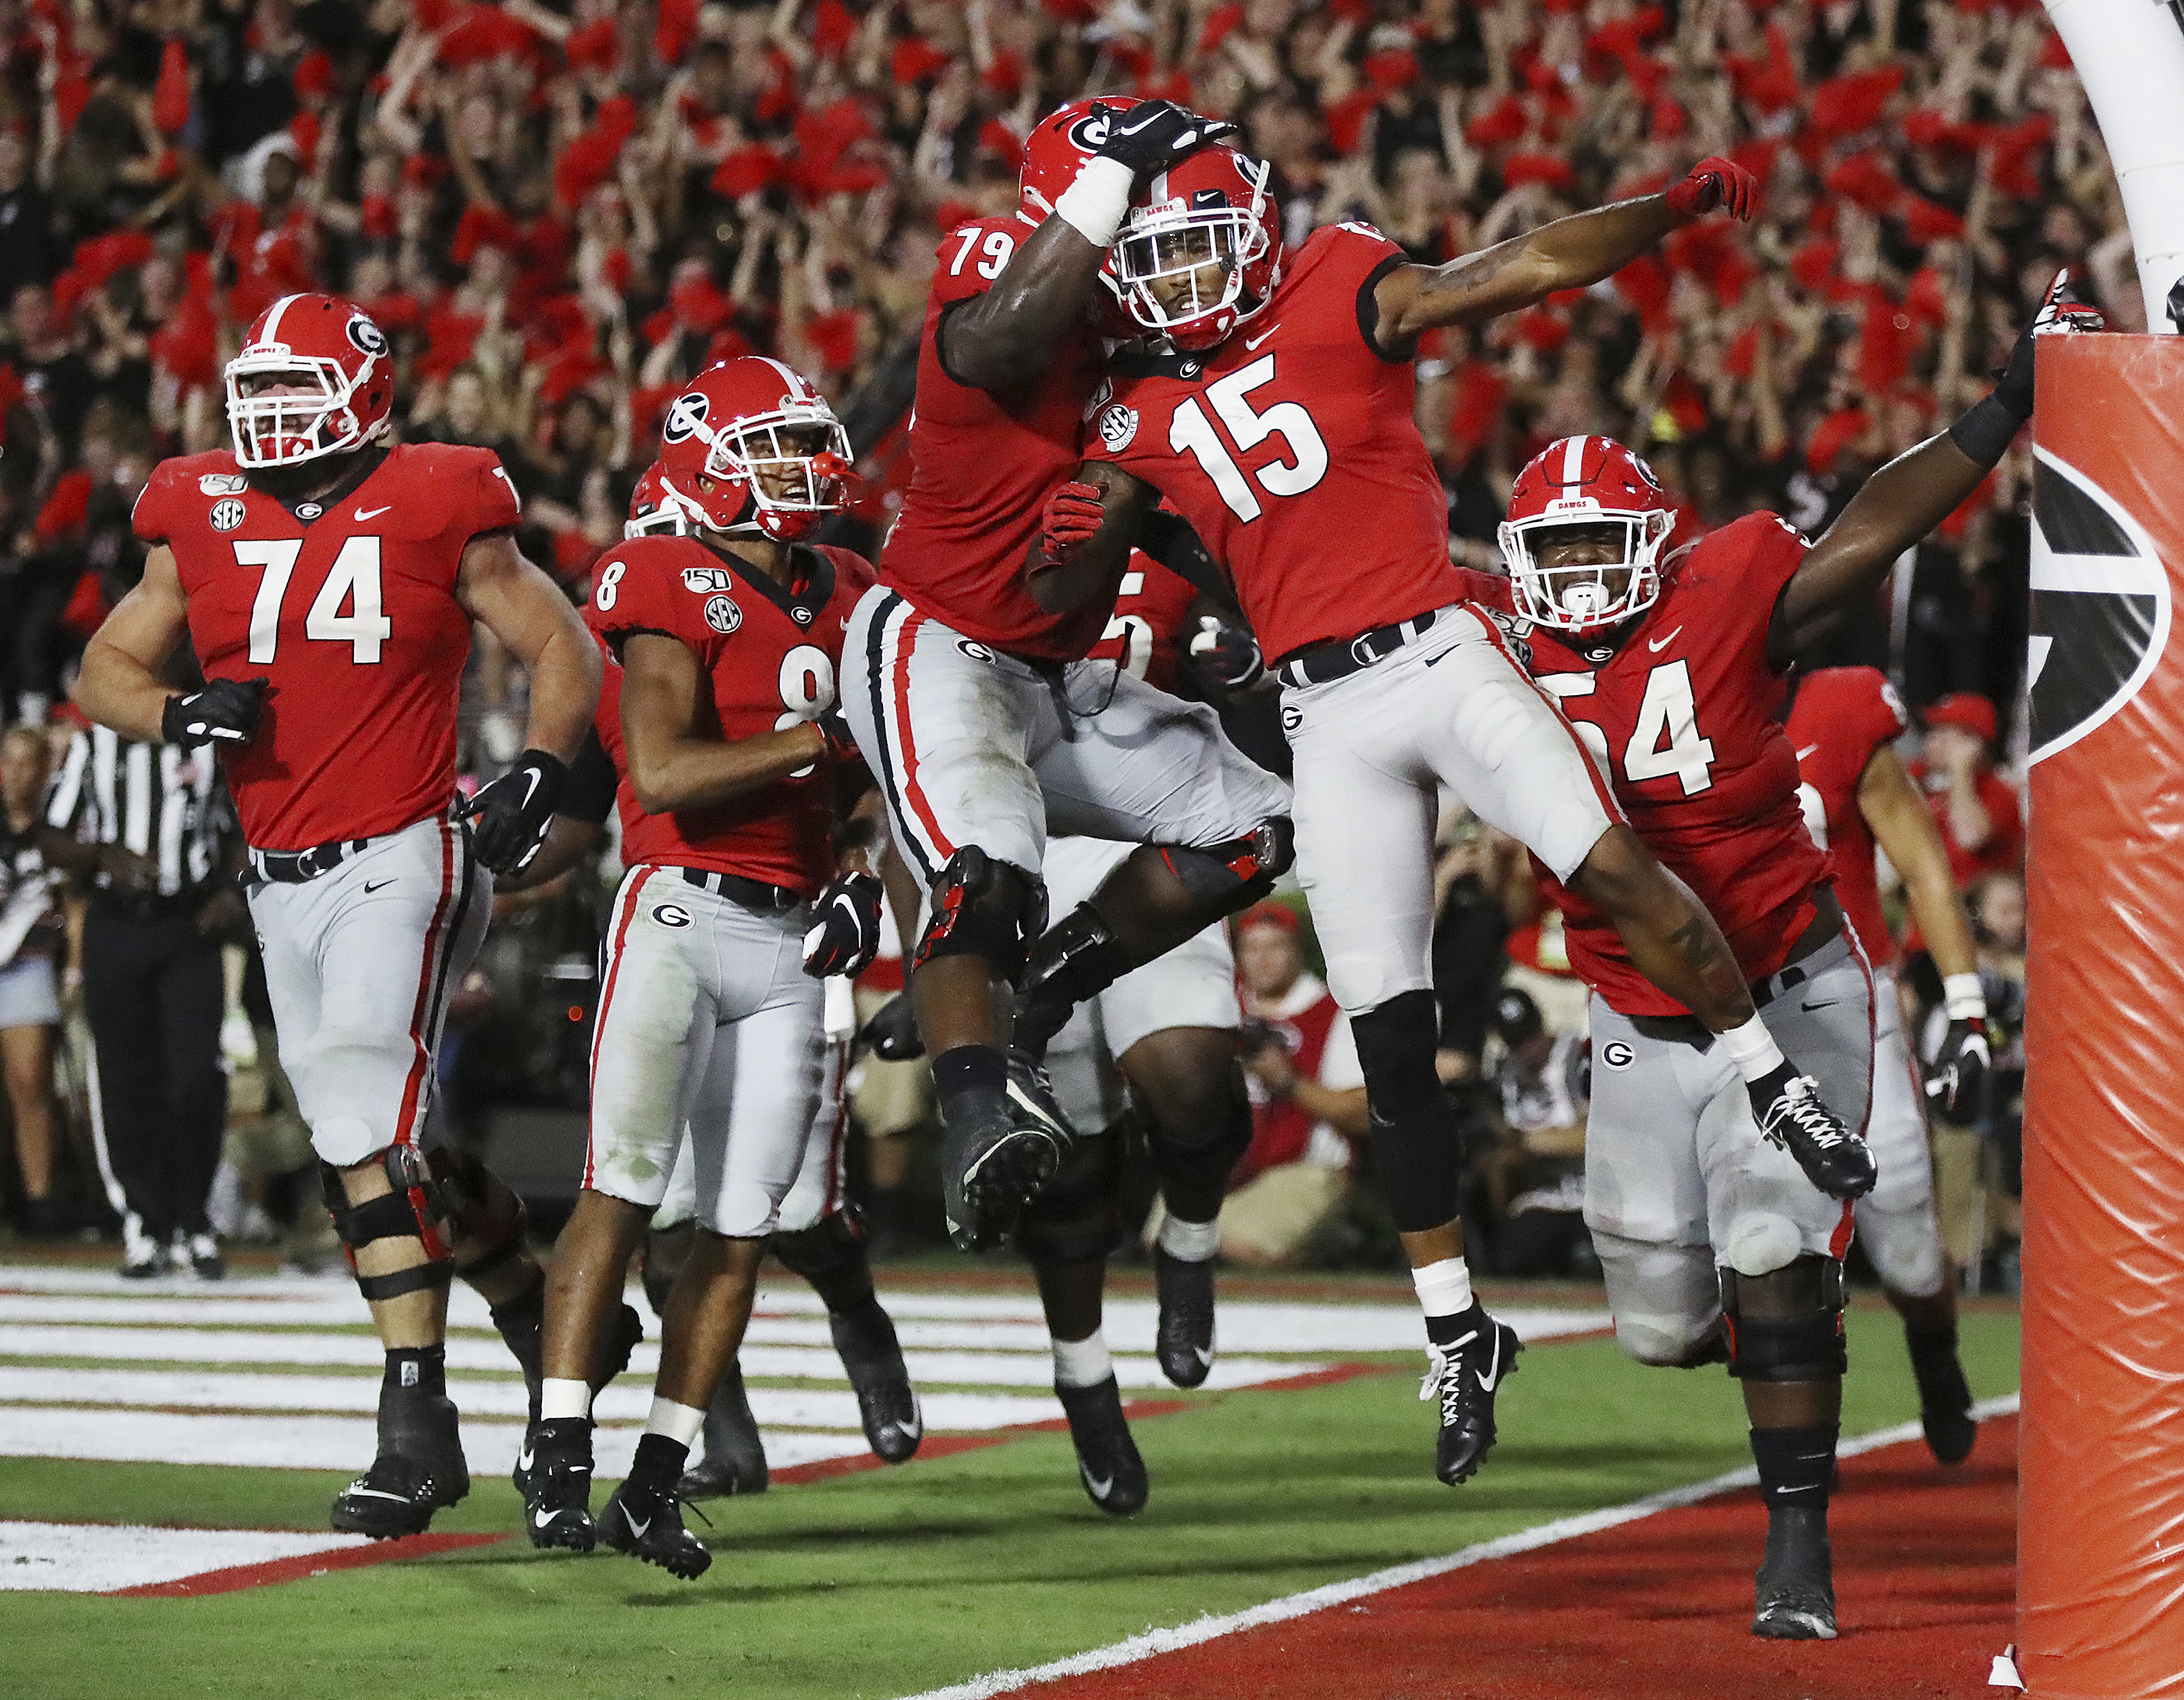 Georgia holds on to beat Notre Dame, 23-17 - The ...